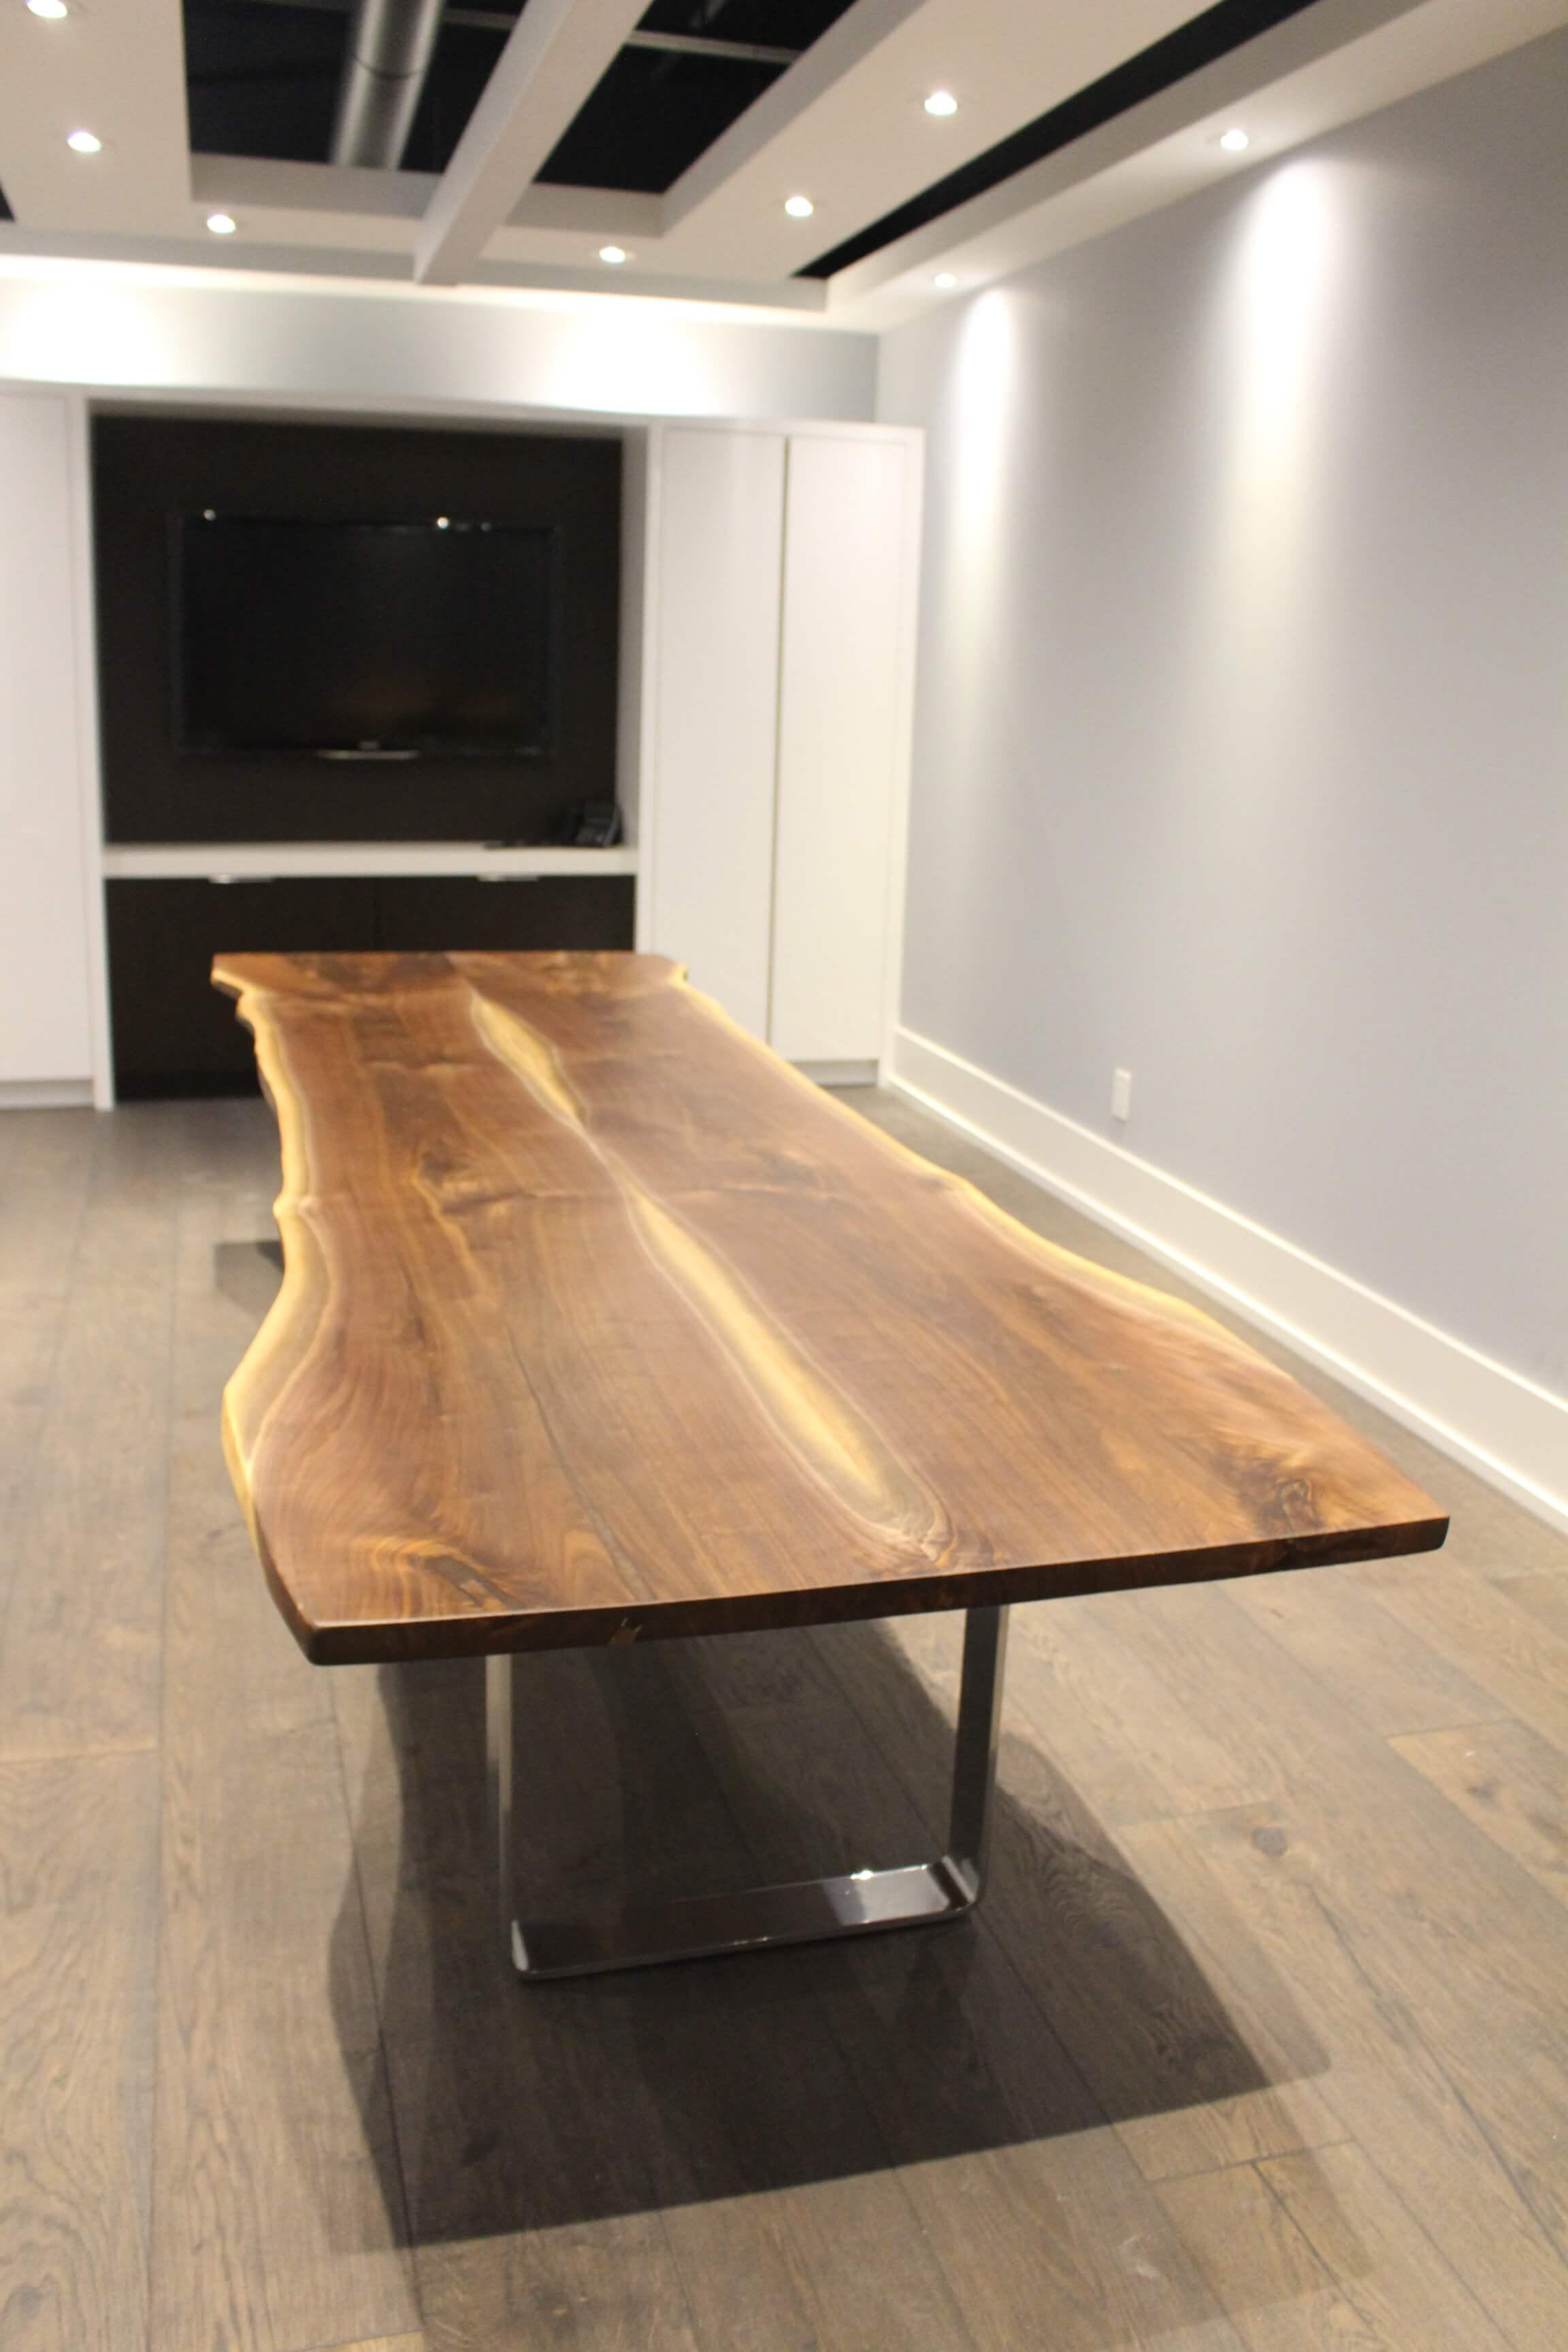 14' live edge black walnut table for New York City client